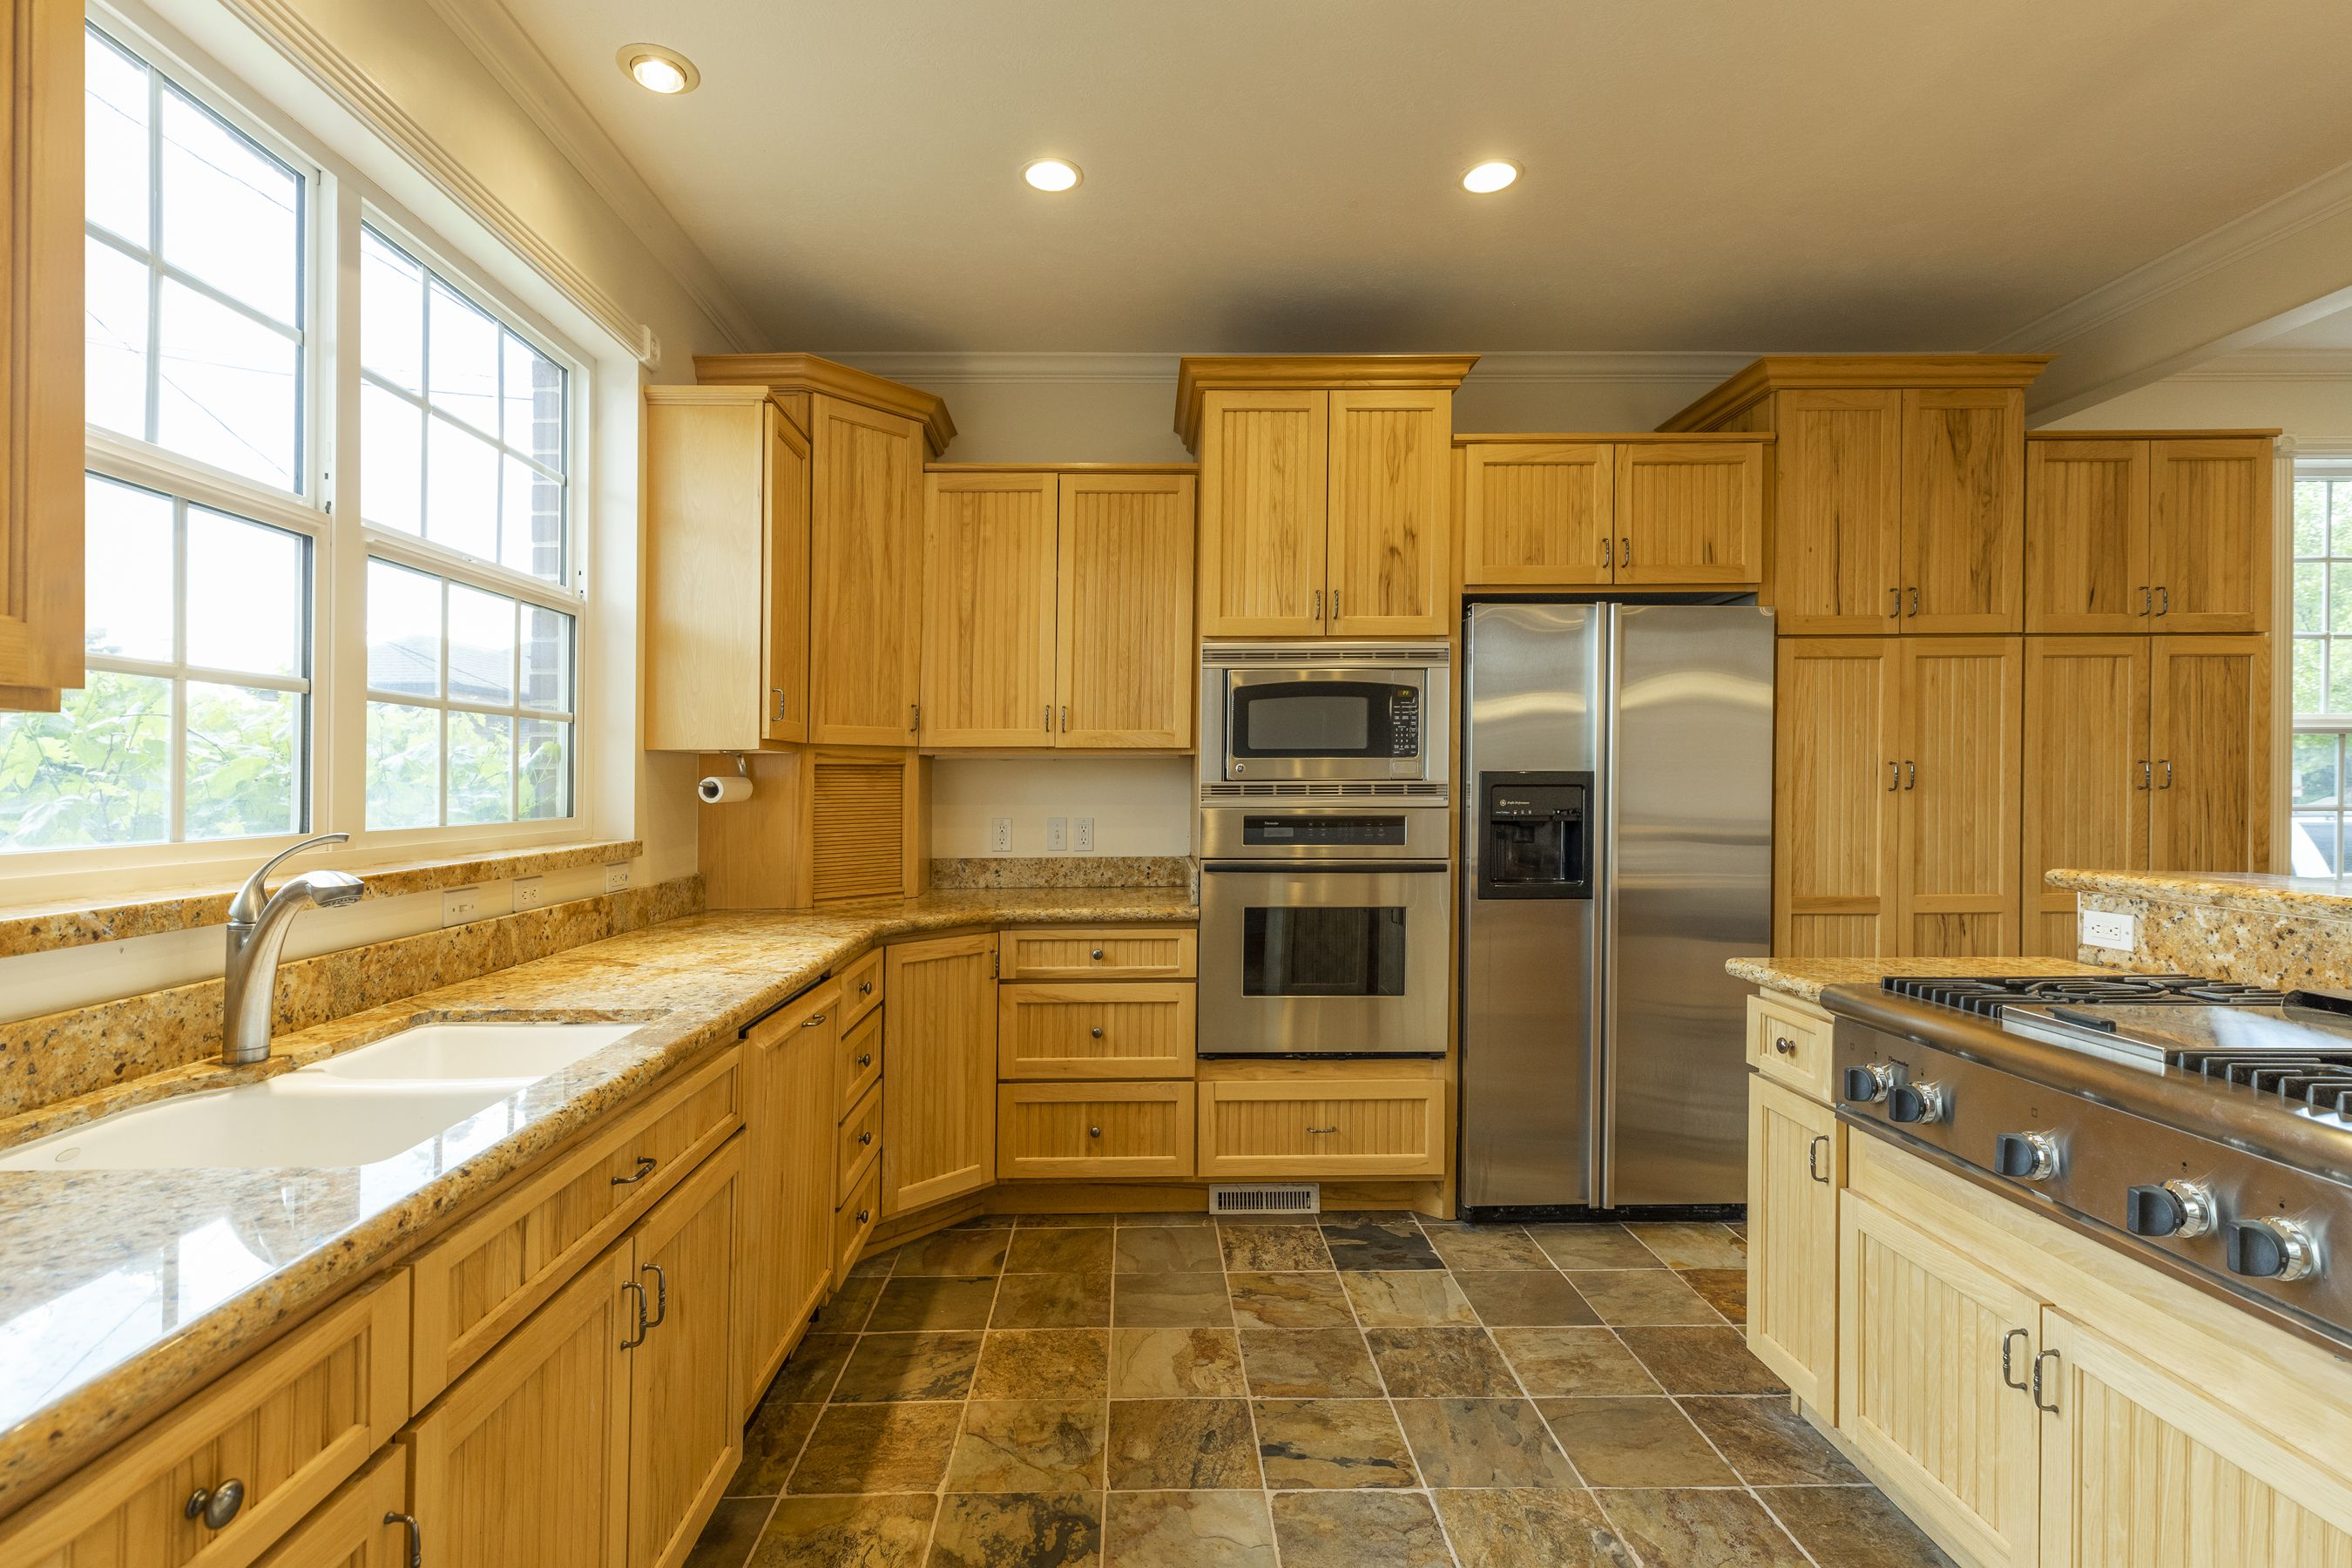 Check out the kitchen with its open plan and plenty of counter top space with a built in gas burning stove. #Kitchen #WindermereUtah #UtahHomes #KitchenDesign #RealEstate #NaturalKitchen #WoodCabinetry #KitchenIsland #InteriorDesign #HomeDesign #HomeDecor